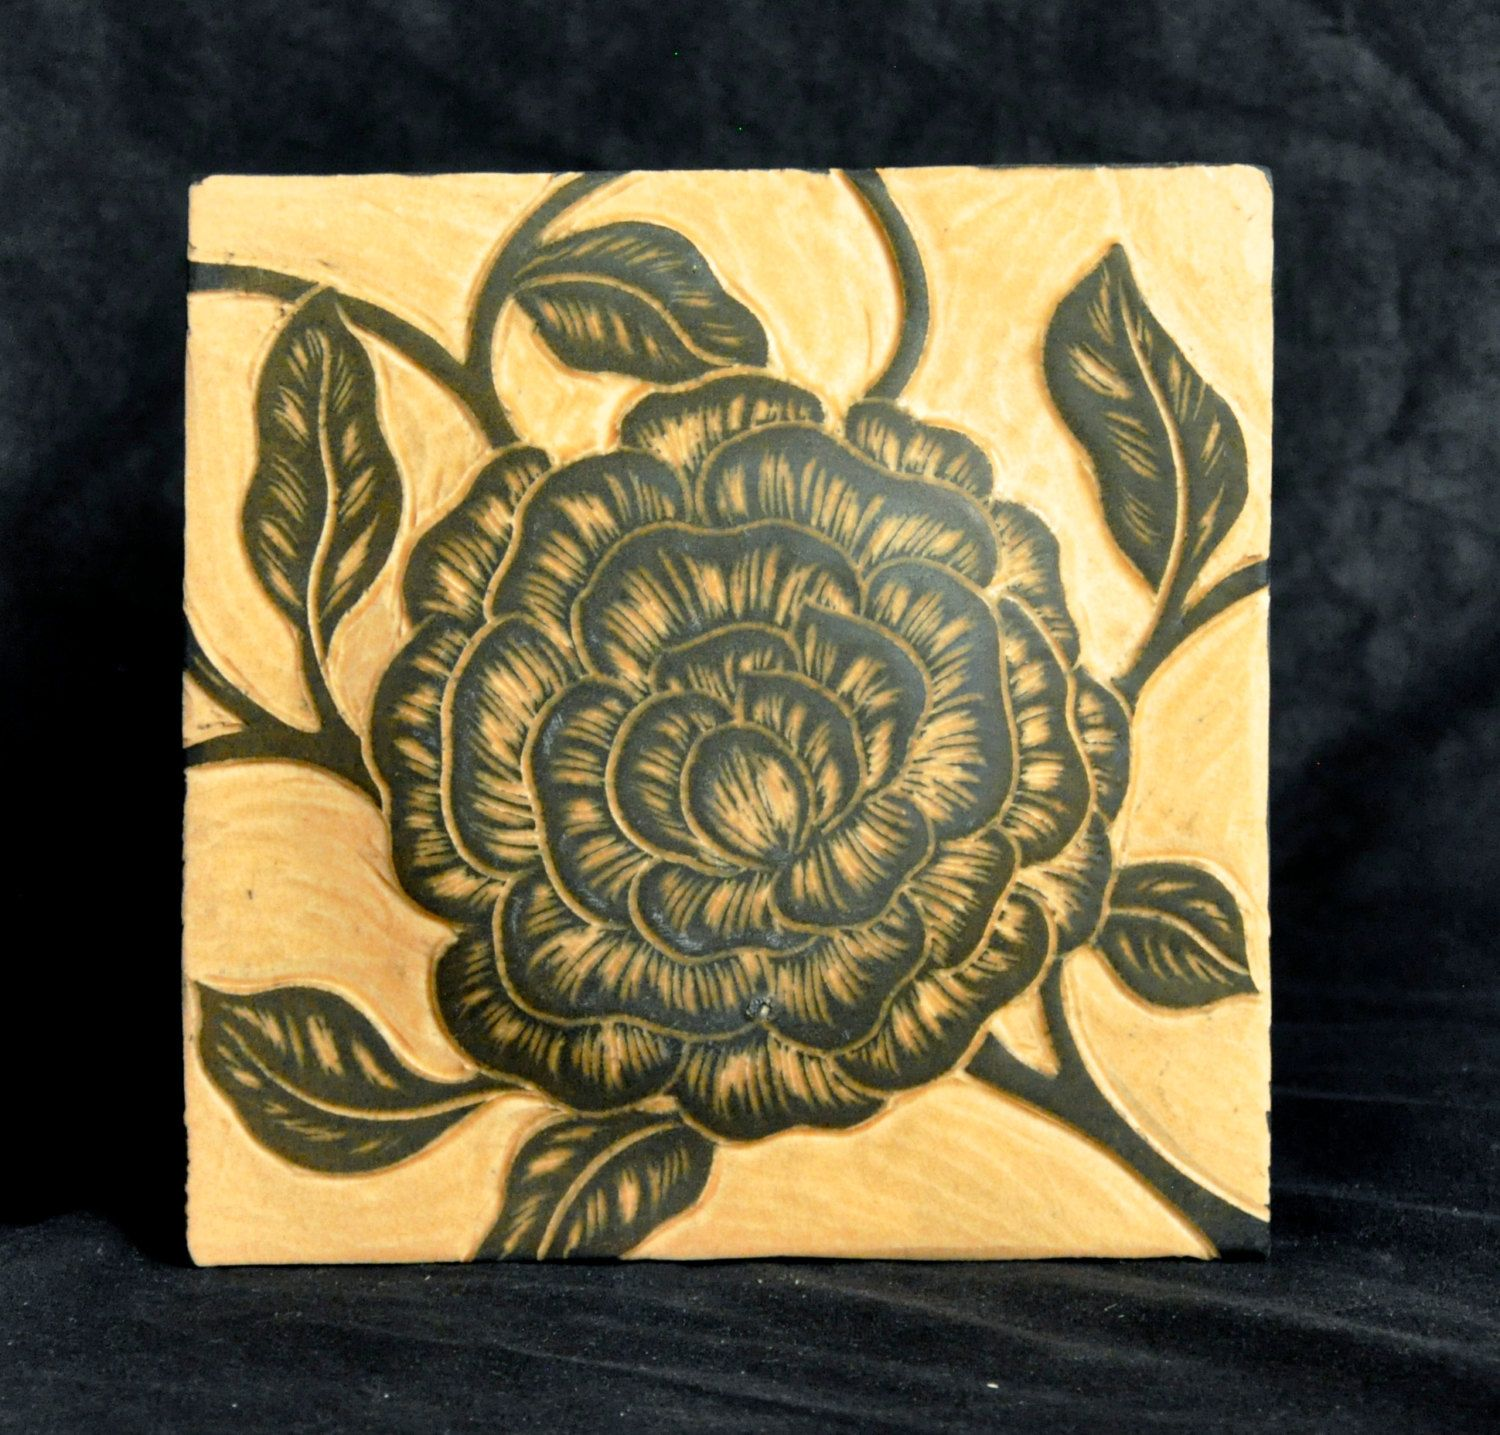 Decorative sgraffito carved porcelain tile 6 square by decorative sgraffito carved porcelain tile 6 square by natalieblakeceramics on etsy handmade tileshandmade ceramicbacksplash dailygadgetfo Gallery